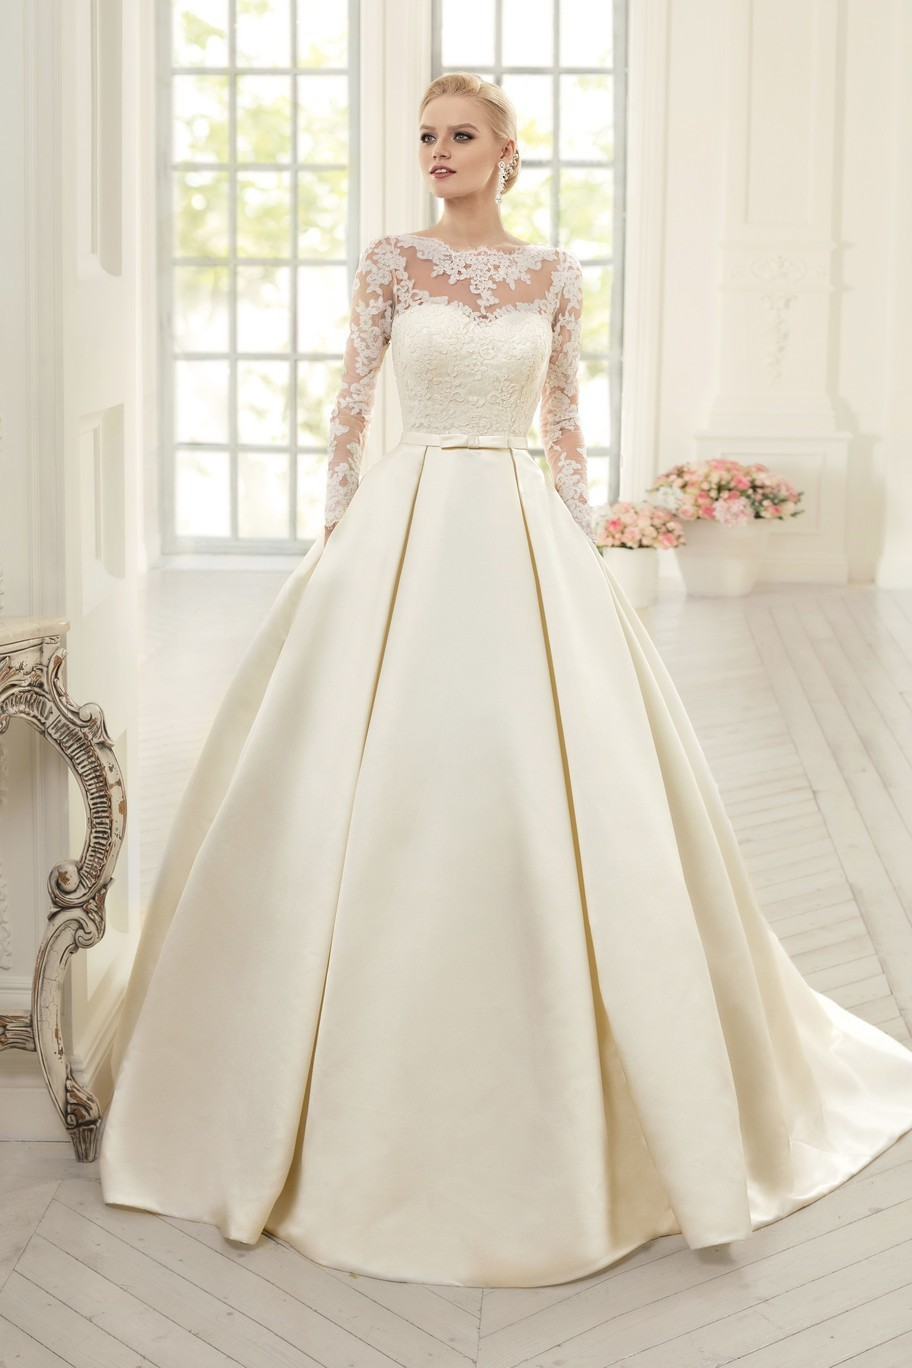 cheap long sleeve wedding dresses, wedding dresses with sleeves pinterest, winter wedding dresses with sleeves, lace wedding dresses with sleeves 2012, off the shoulder wedding dresses with sleeves, romantic wedding dresses with sleeves, short wedding dresses with sleeves, wedding dresses online